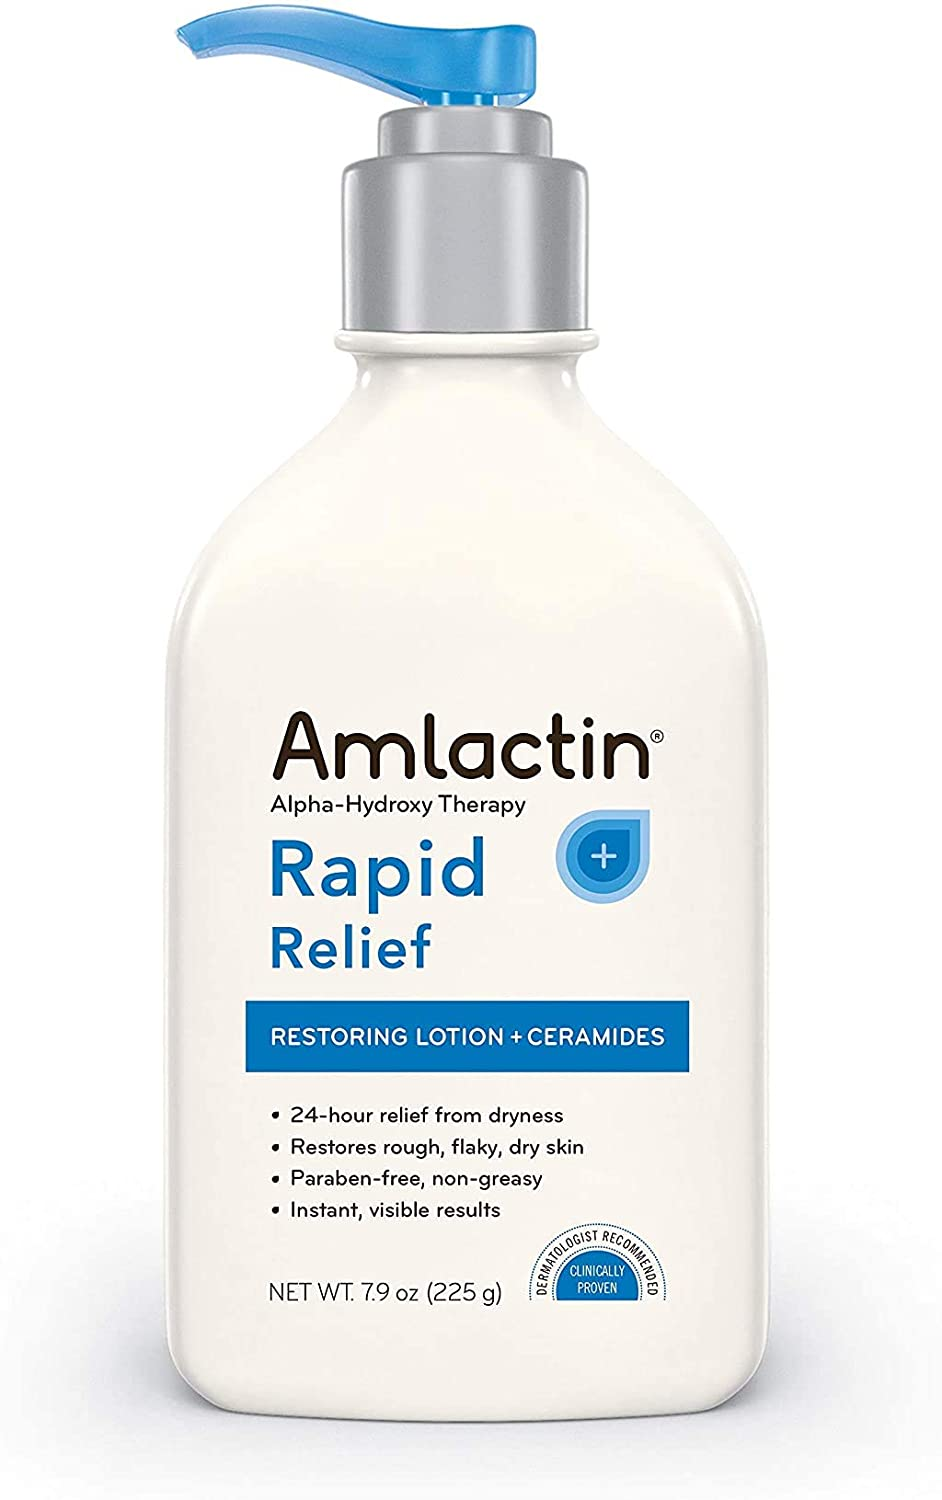 Amlactin Alpha Hydroxy Therapy Rapid Relief Restoring Lotion + Ceramides